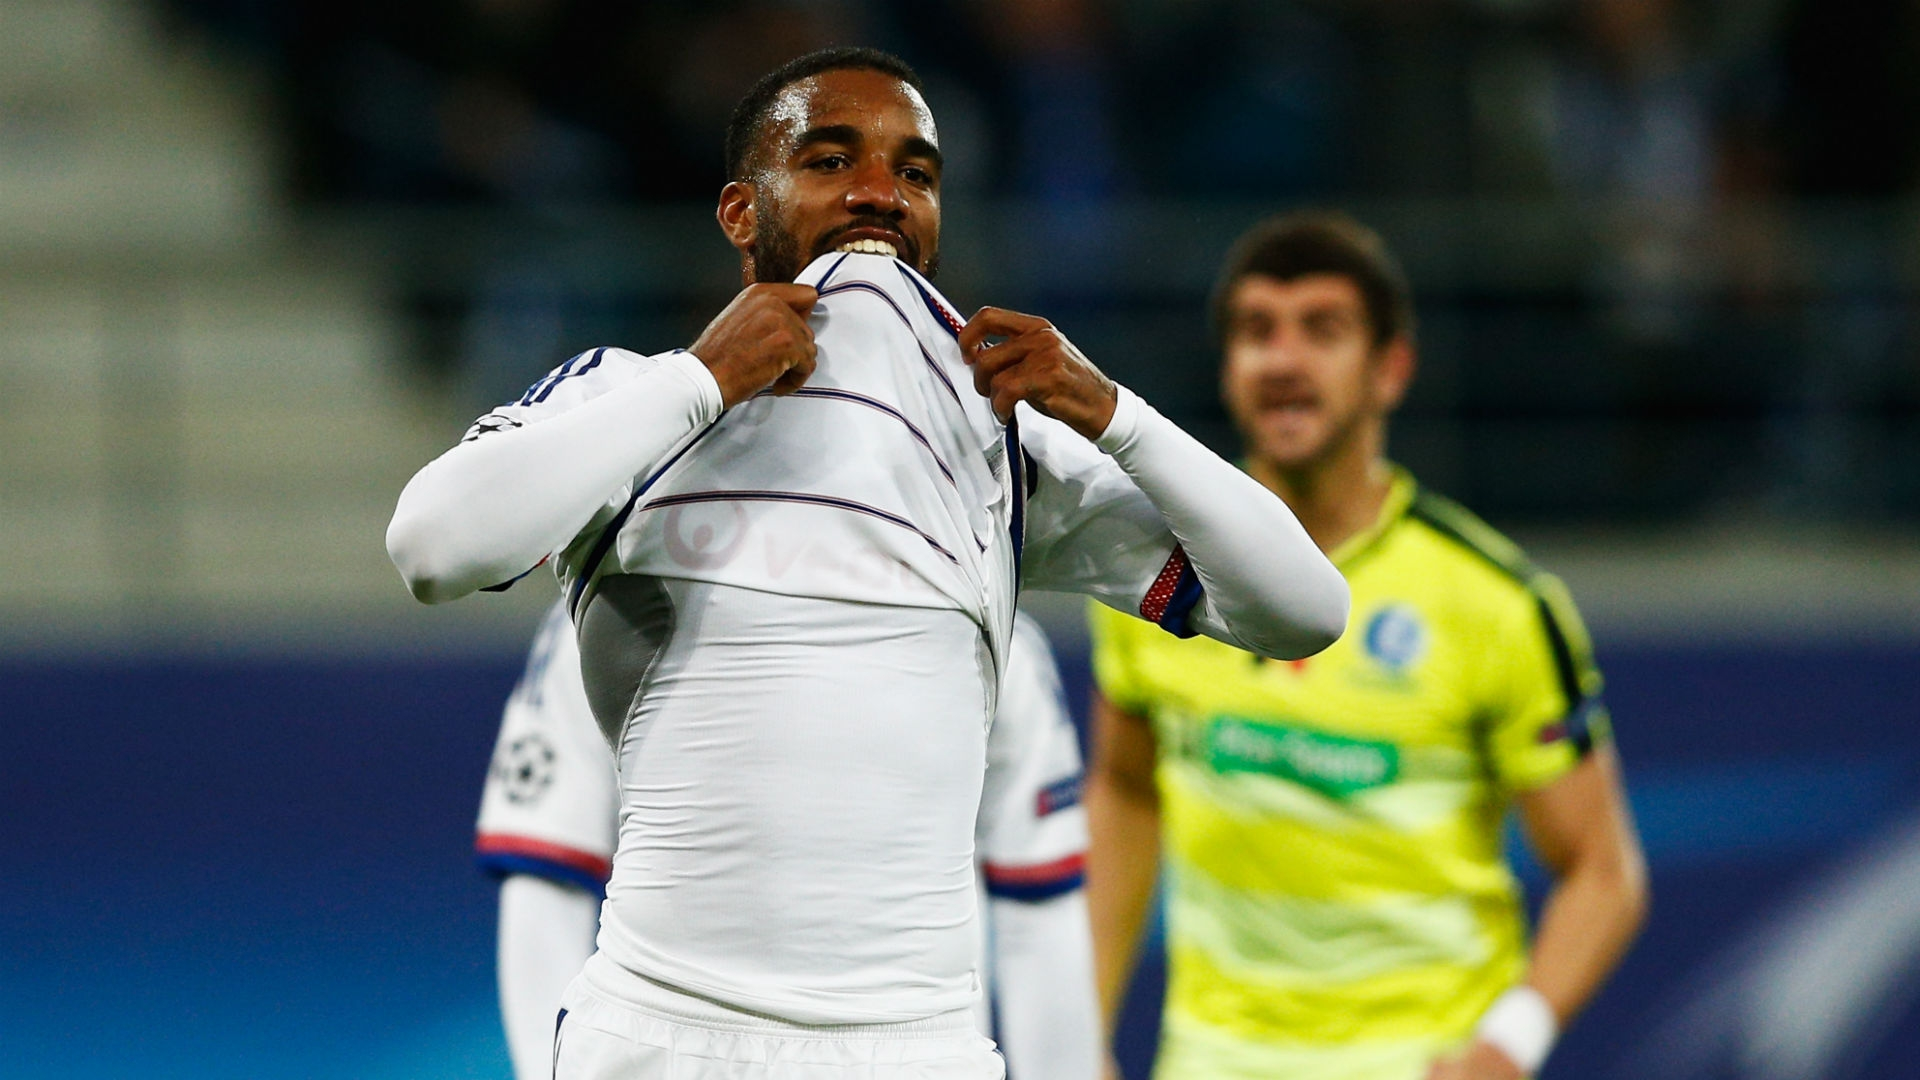 Lyon president Jean-Michel Aulas now says that there are no other offers for Lacazette.